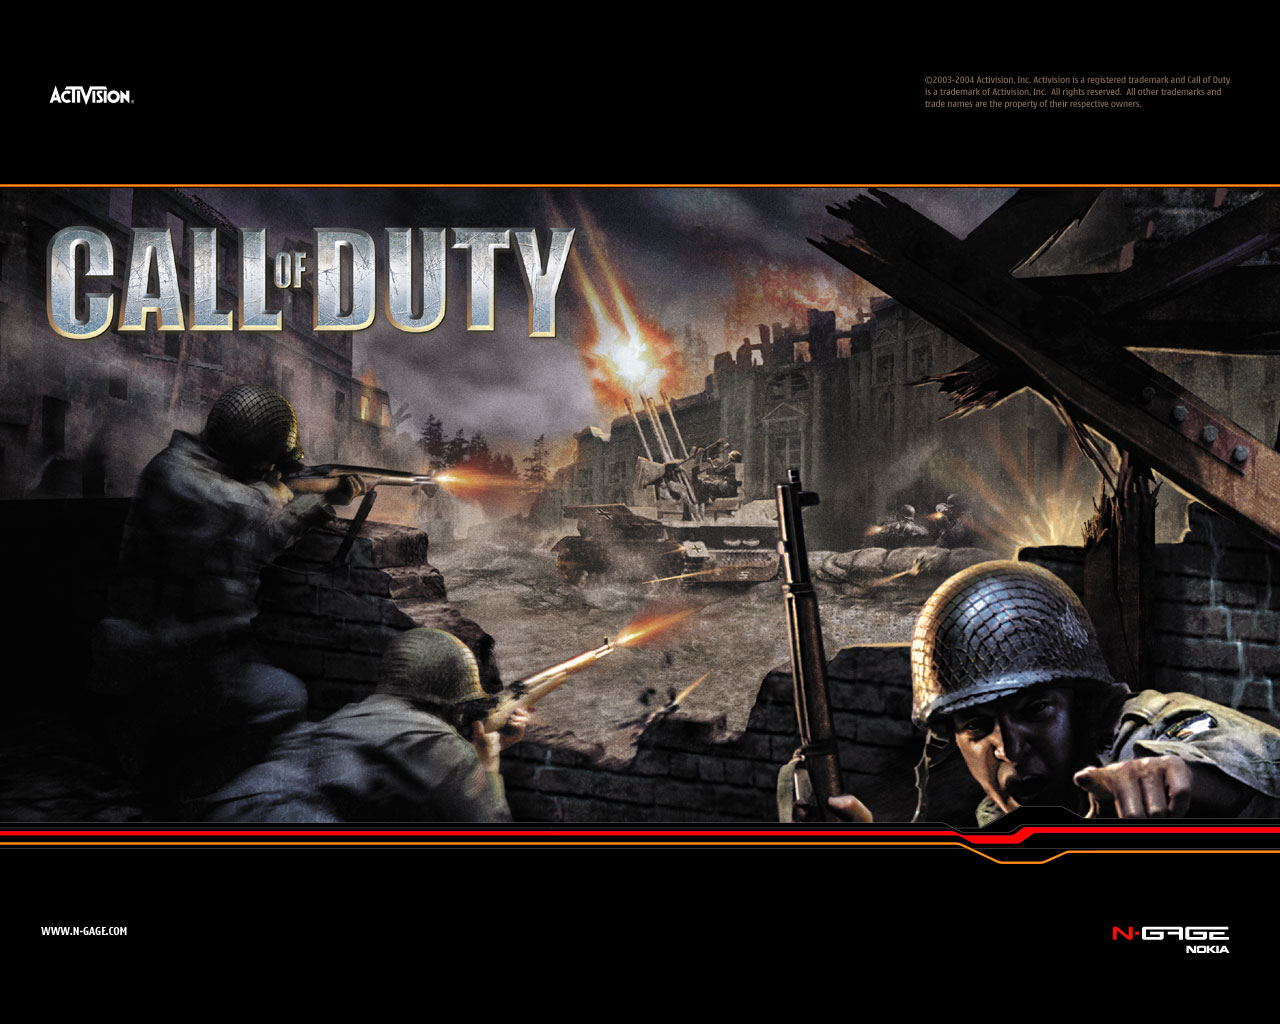 COD-wallpaper-ps2-online-games-99855_1280_1024.jpg